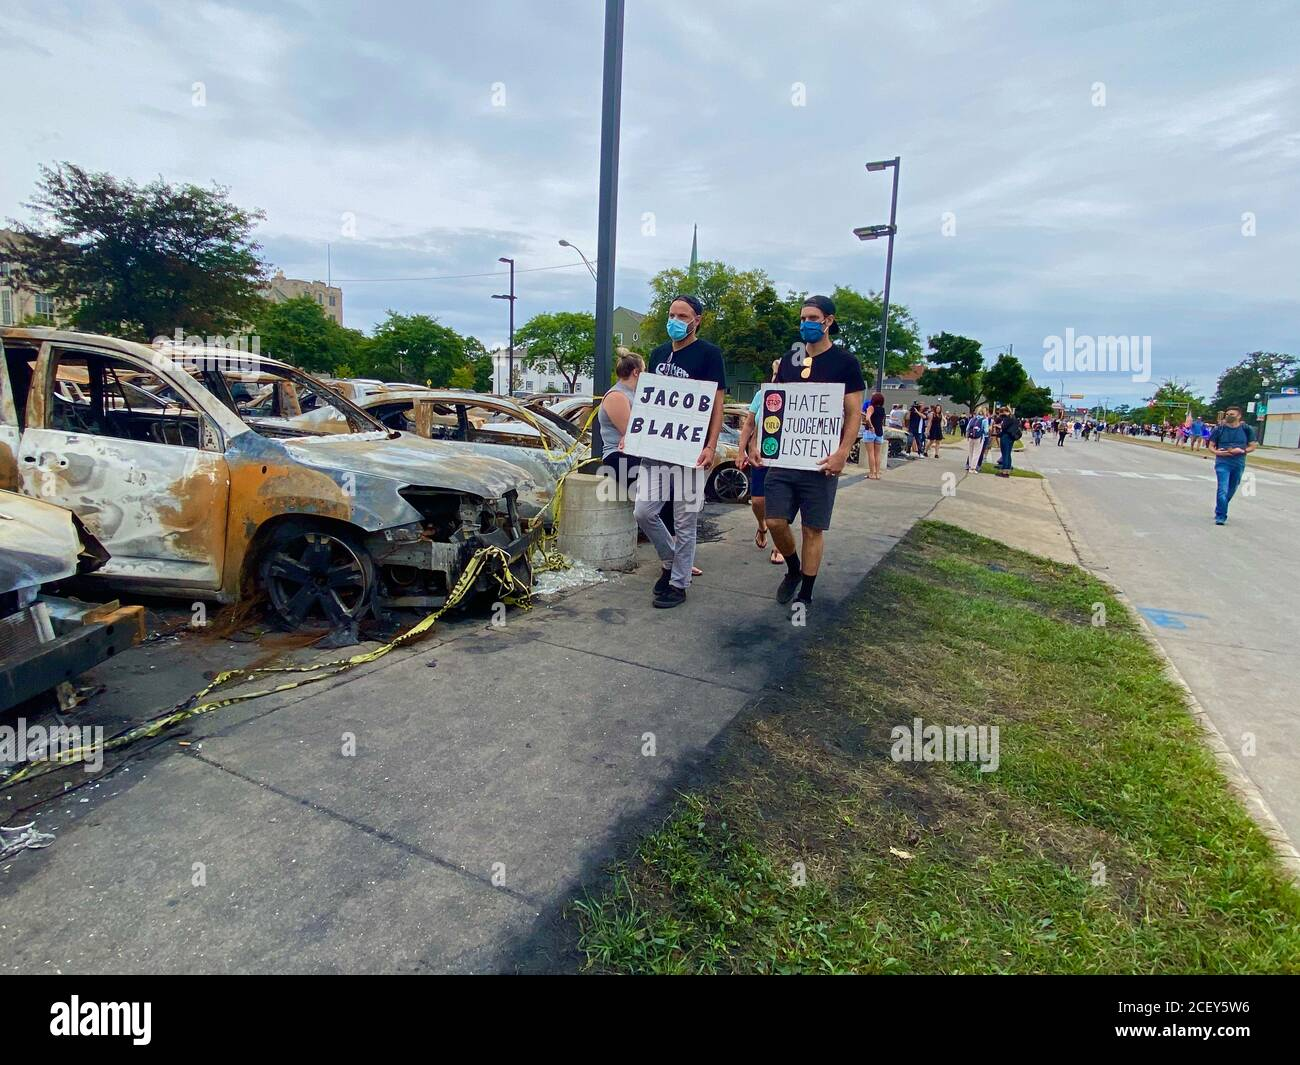 Kenosha, Wisconsin, USA. 1st Sep, 2020. BLM Protestors Protestors at the rally space in front of the Kenosha courthouse during President Trump's controversial visit on September 1. Credit: Amy Katz/ZUMA Wire/Alamy Live News Stock Photo